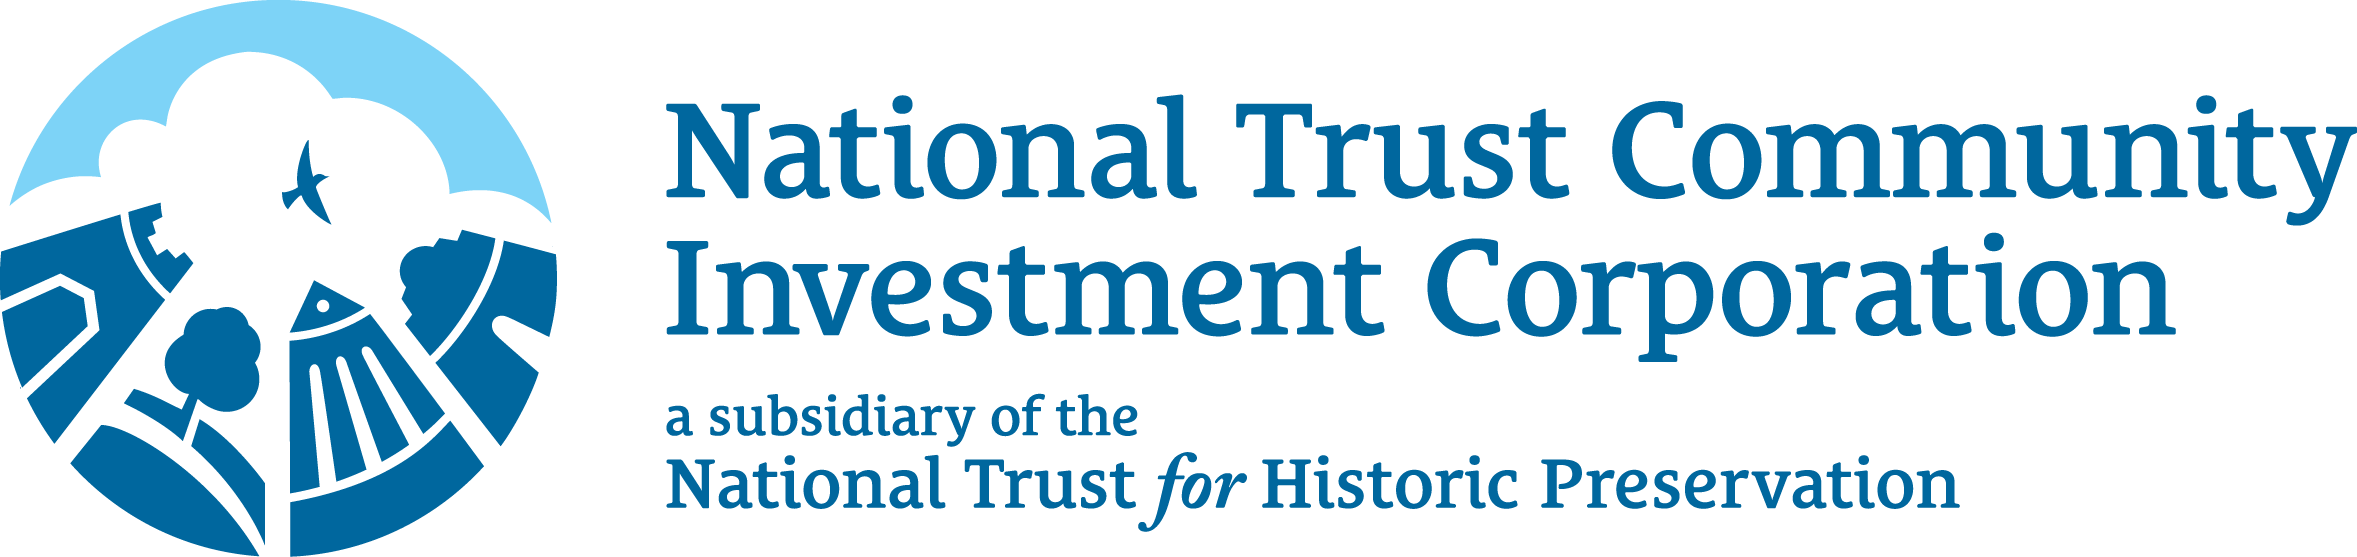 National Trust Community Investment Corporation